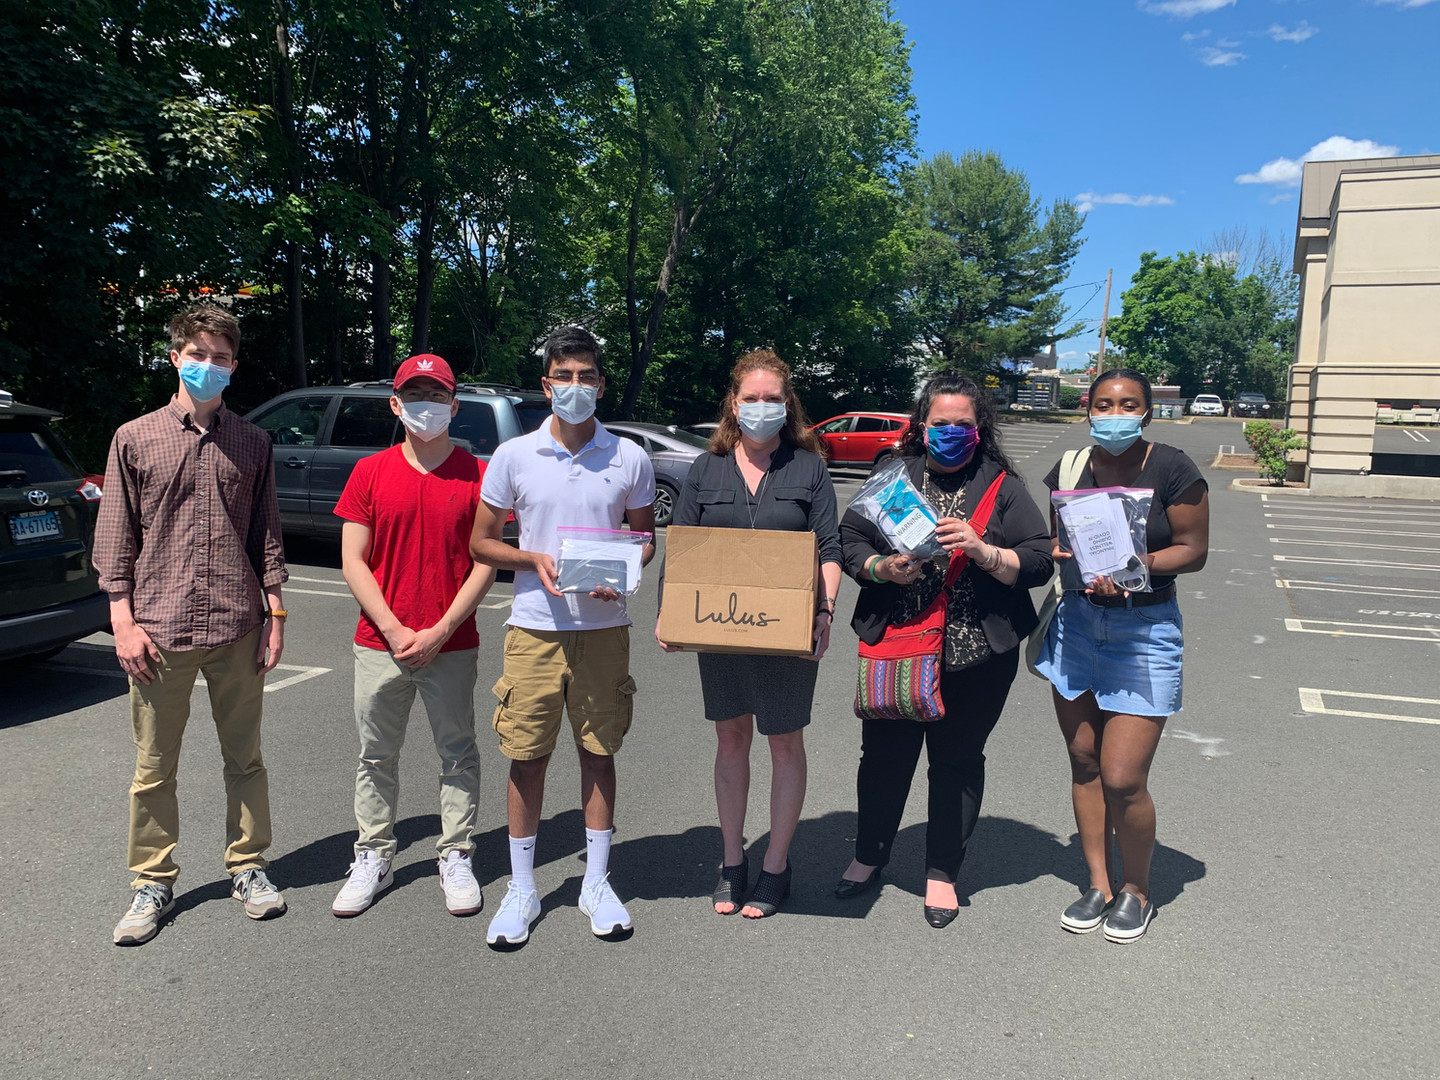 Our CT Team including Aakshi Agarwal, Max Golden, Evan Cheng, Siddharth Jain, and Alexandra McCraven dropped off 10 devices to the Va Visn New Haven Vet Center! This is CT's fourth partner clinic.